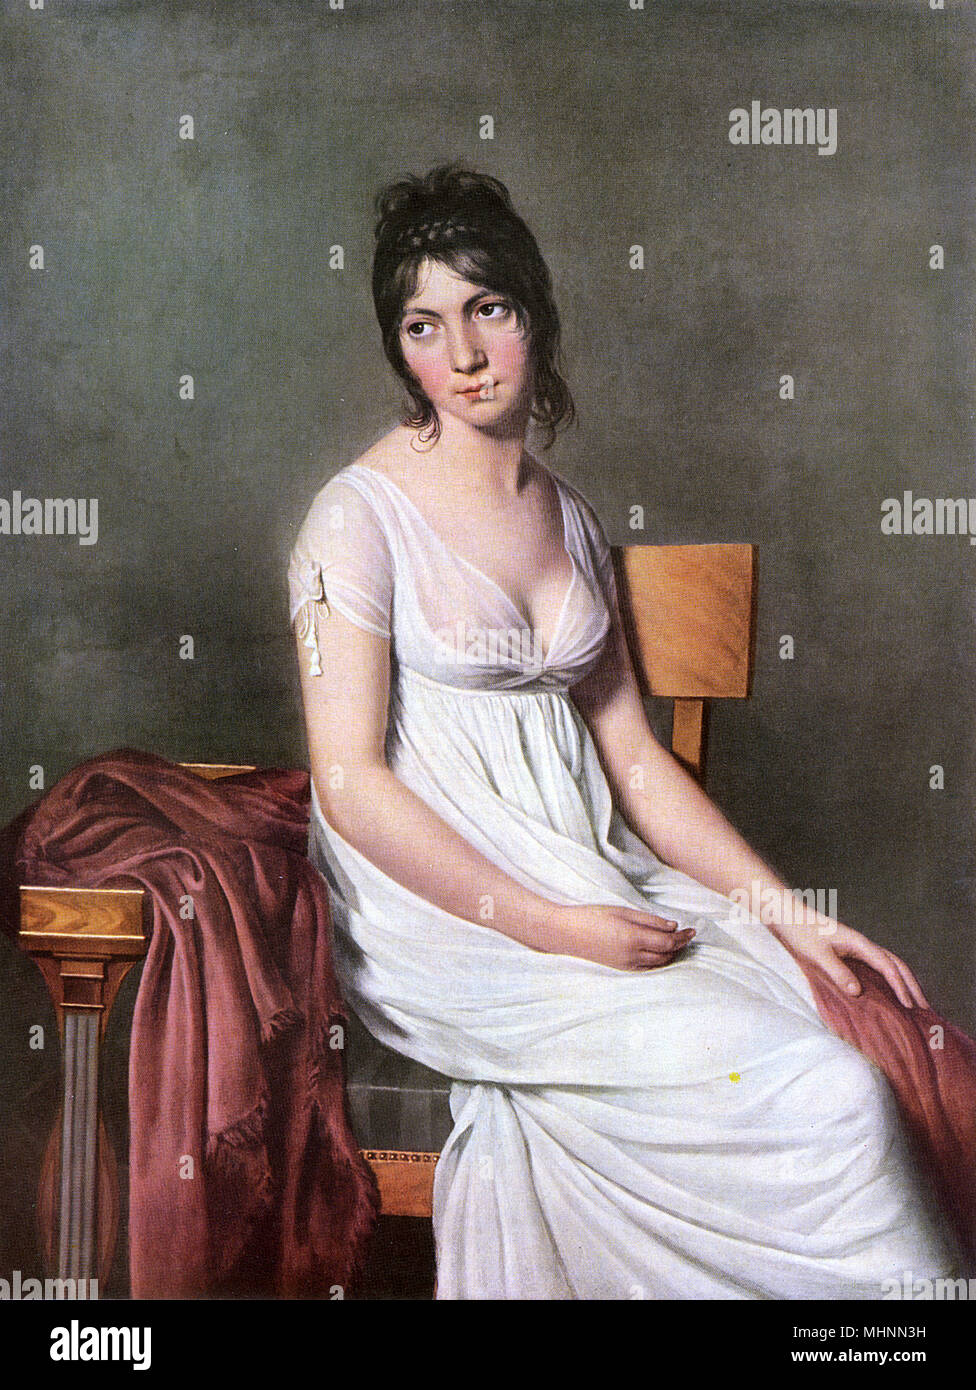 """Madame Hamelin by Jacques-Louis David (1748-1825) - painting on canvas. The subject, Madame Hamelin, a Creole born in Santo Domingo. She became the wife of a Parisian banker, and played a brilliant role in Parisian society of the Directoire period. She was nicknamed """"La Jolie Laide"""". Chateaubriand, whom she captivated, said of her that she possessed the two qualities that also characterized France, nobility and frivolity.     Date: circa 1800 - Stock Image"""